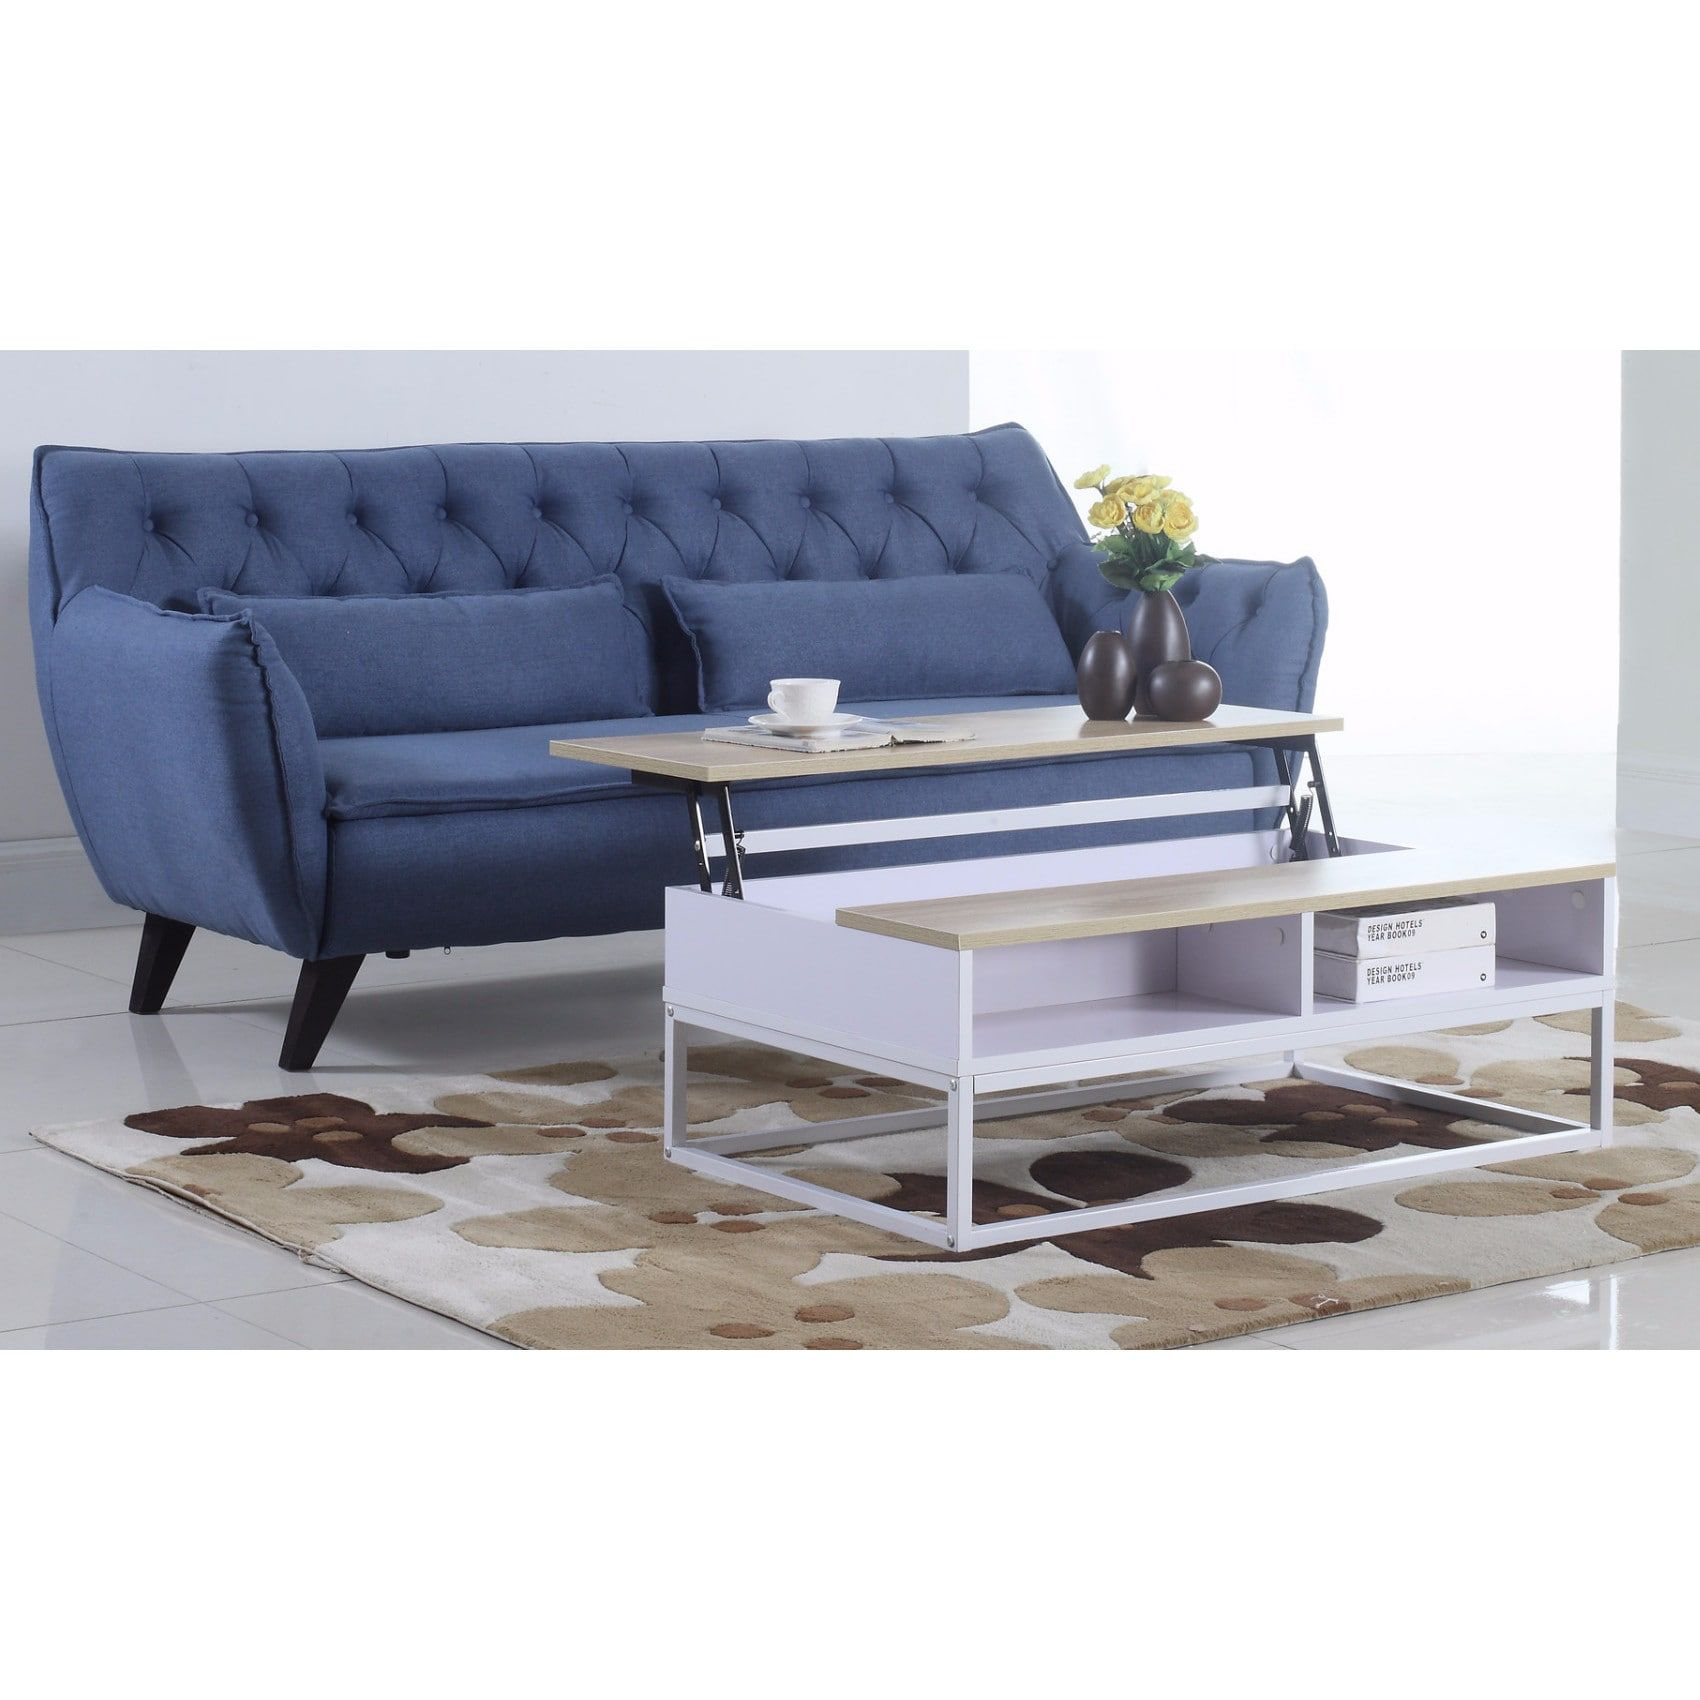 Modern and simply designed lift top coffee table overstock com shopping the best deals on coffee sofa end tables